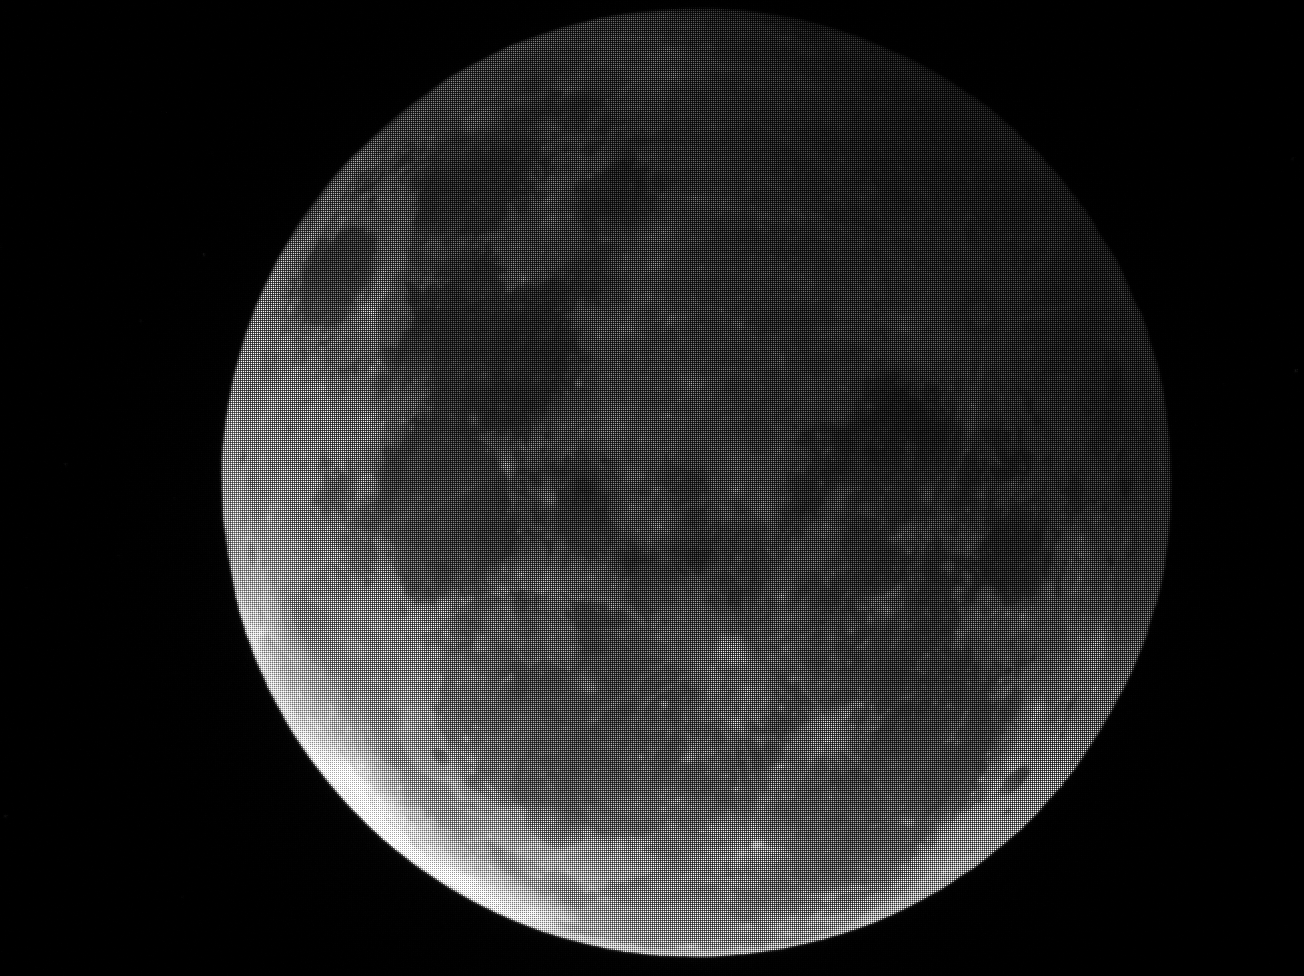 Moon_00040.png